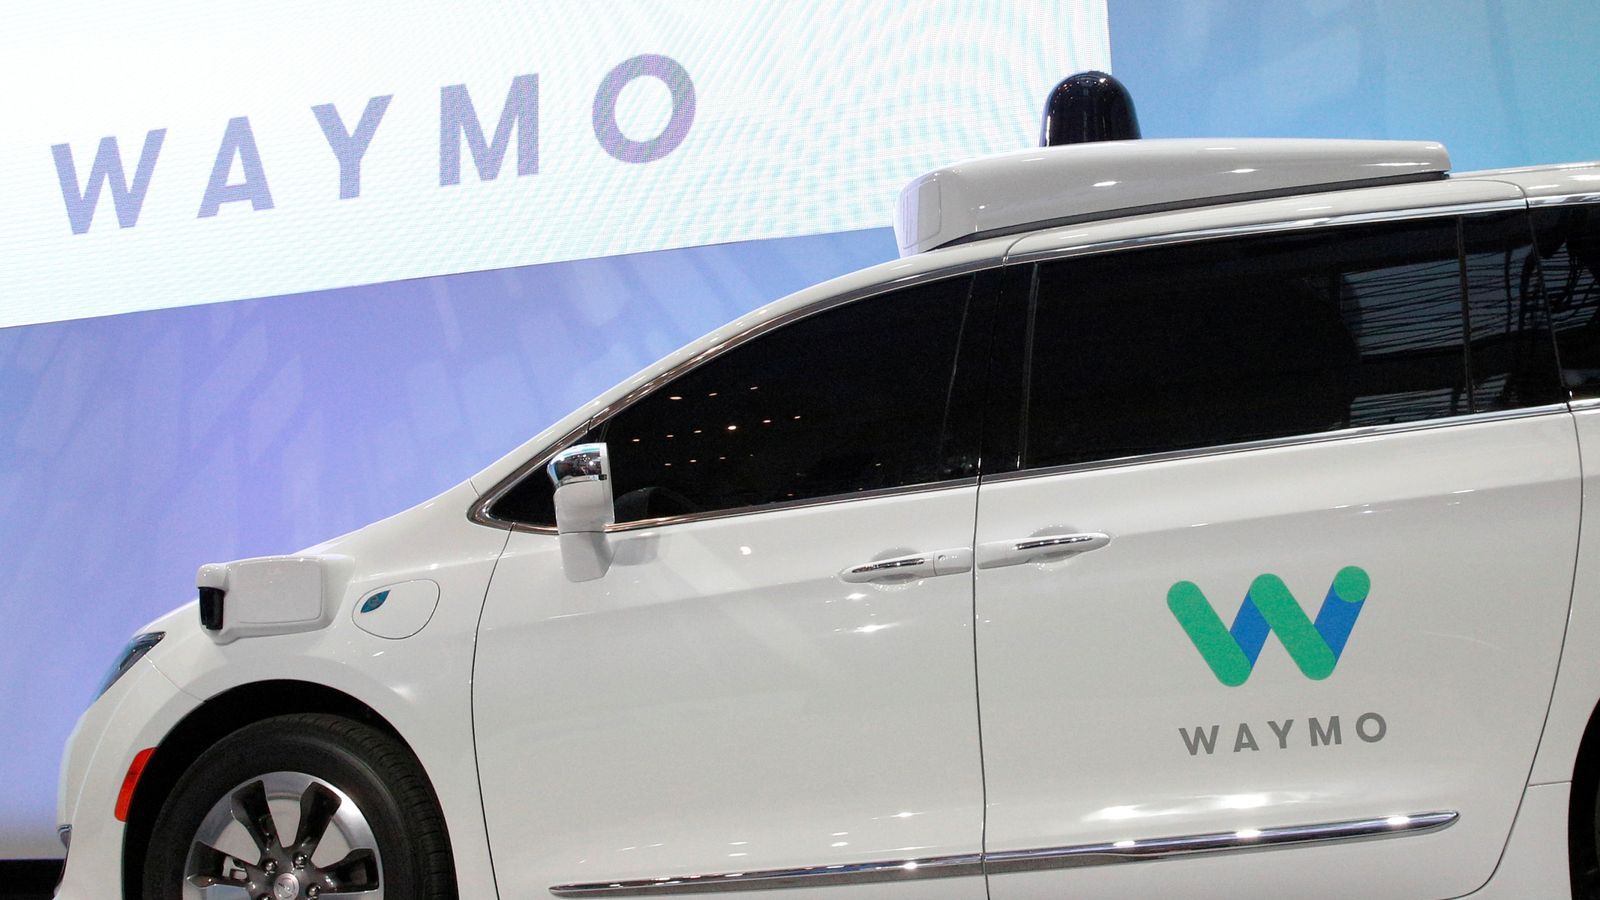 Uber sued by Waymo over self-driving technology 'theft'